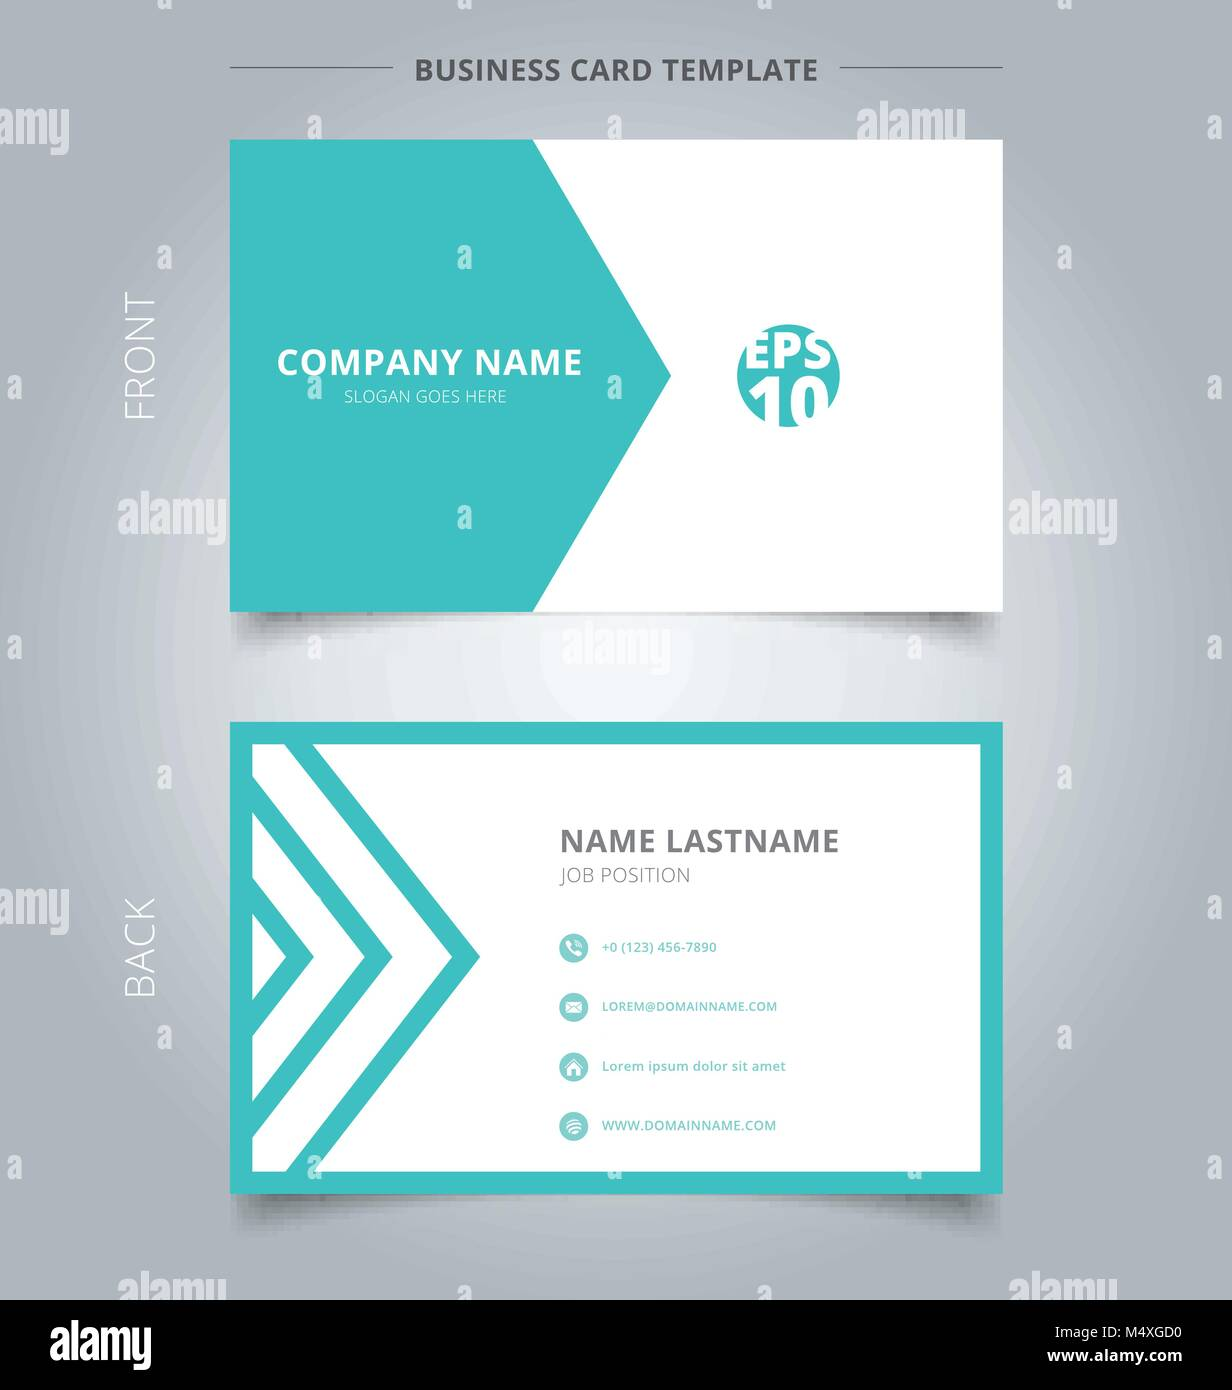 Creative business card and name card template green and white stock creative business card and name card template green and white triangle pattern abstract concept and commercial design vector graphic illustration friedricerecipe Gallery